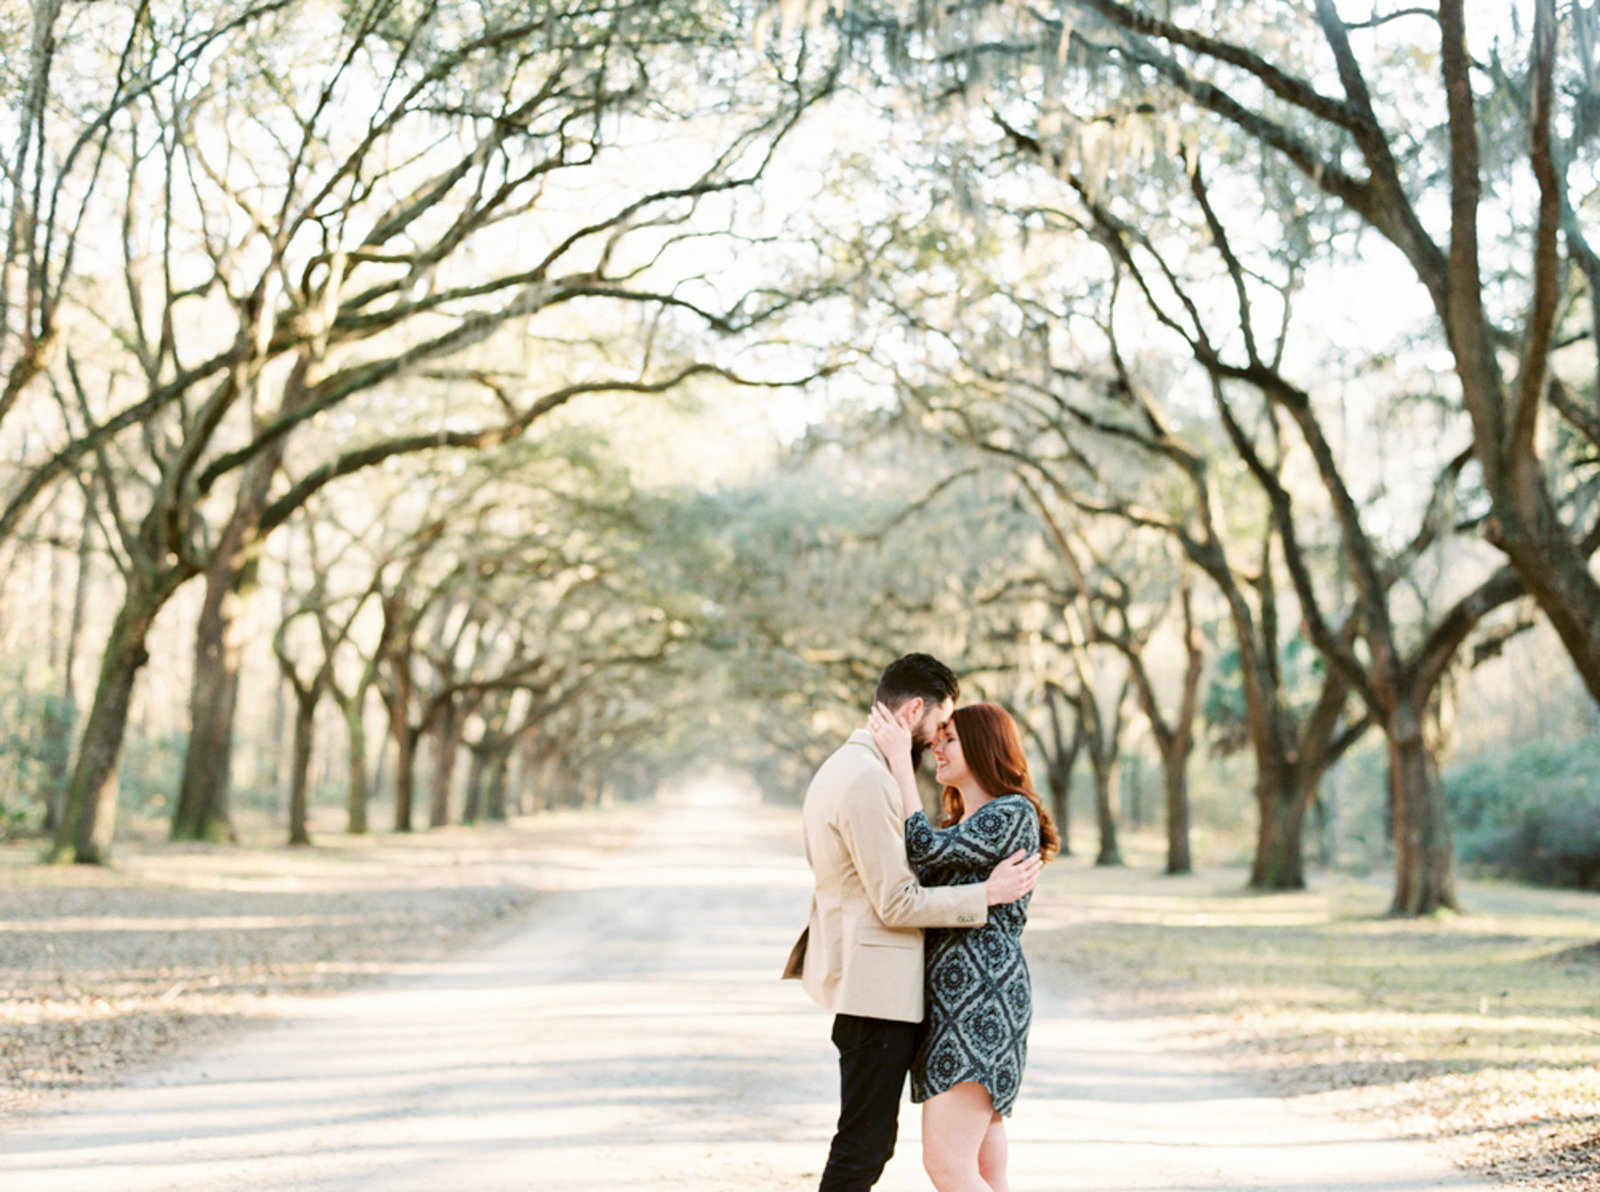 Fine_Art_Film_Savannah_Georgia_Engagement_Wedding_Photographer_Kati_Rosado_Photography-33